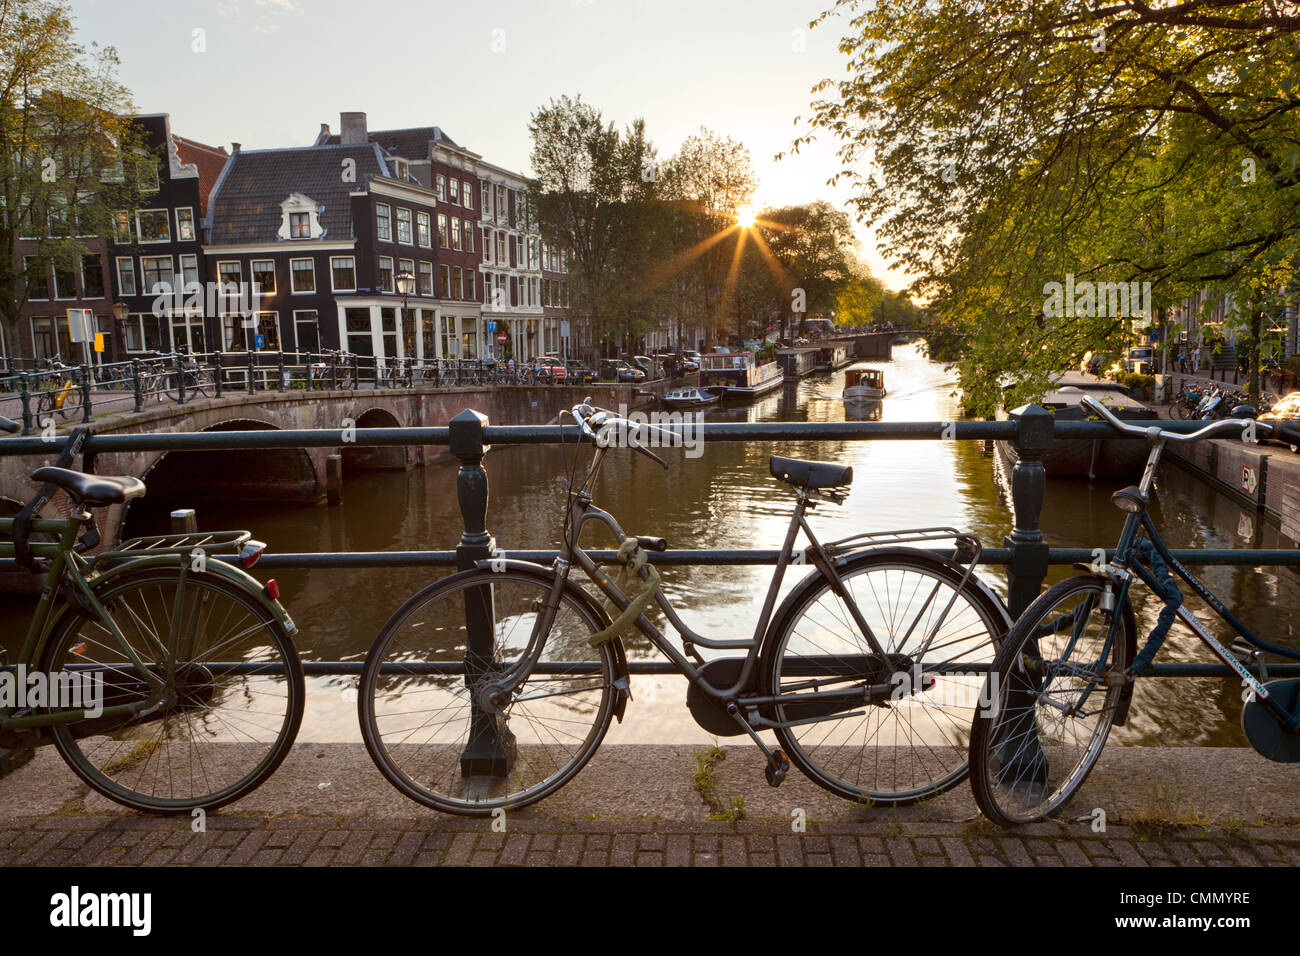 Brouwersgracht and bicycles, Amsterdam, North Holland, Netherlands, Europe - Stock Image